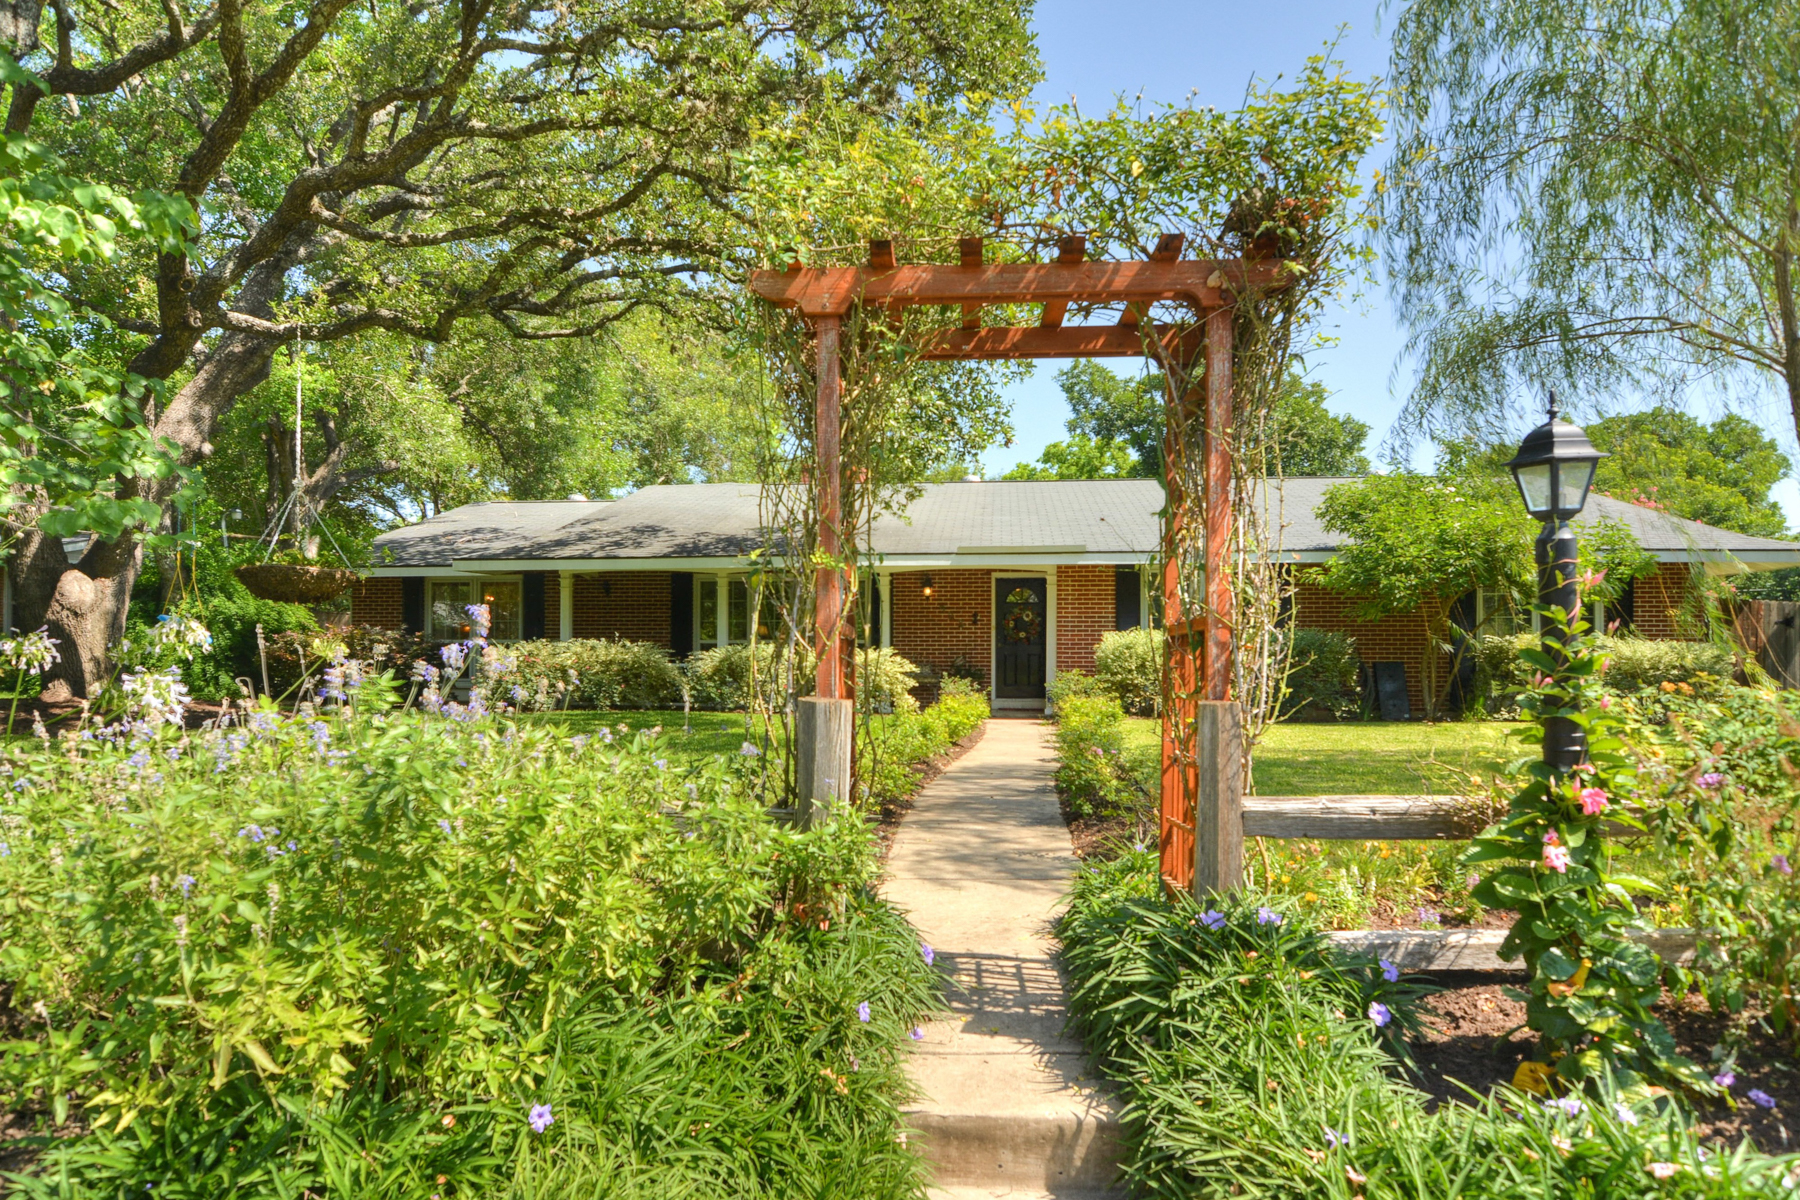 Single Family Home for Sale at Lovely Home in Northwood 423 Cave Ln San Antonio, Texas 78209 United States